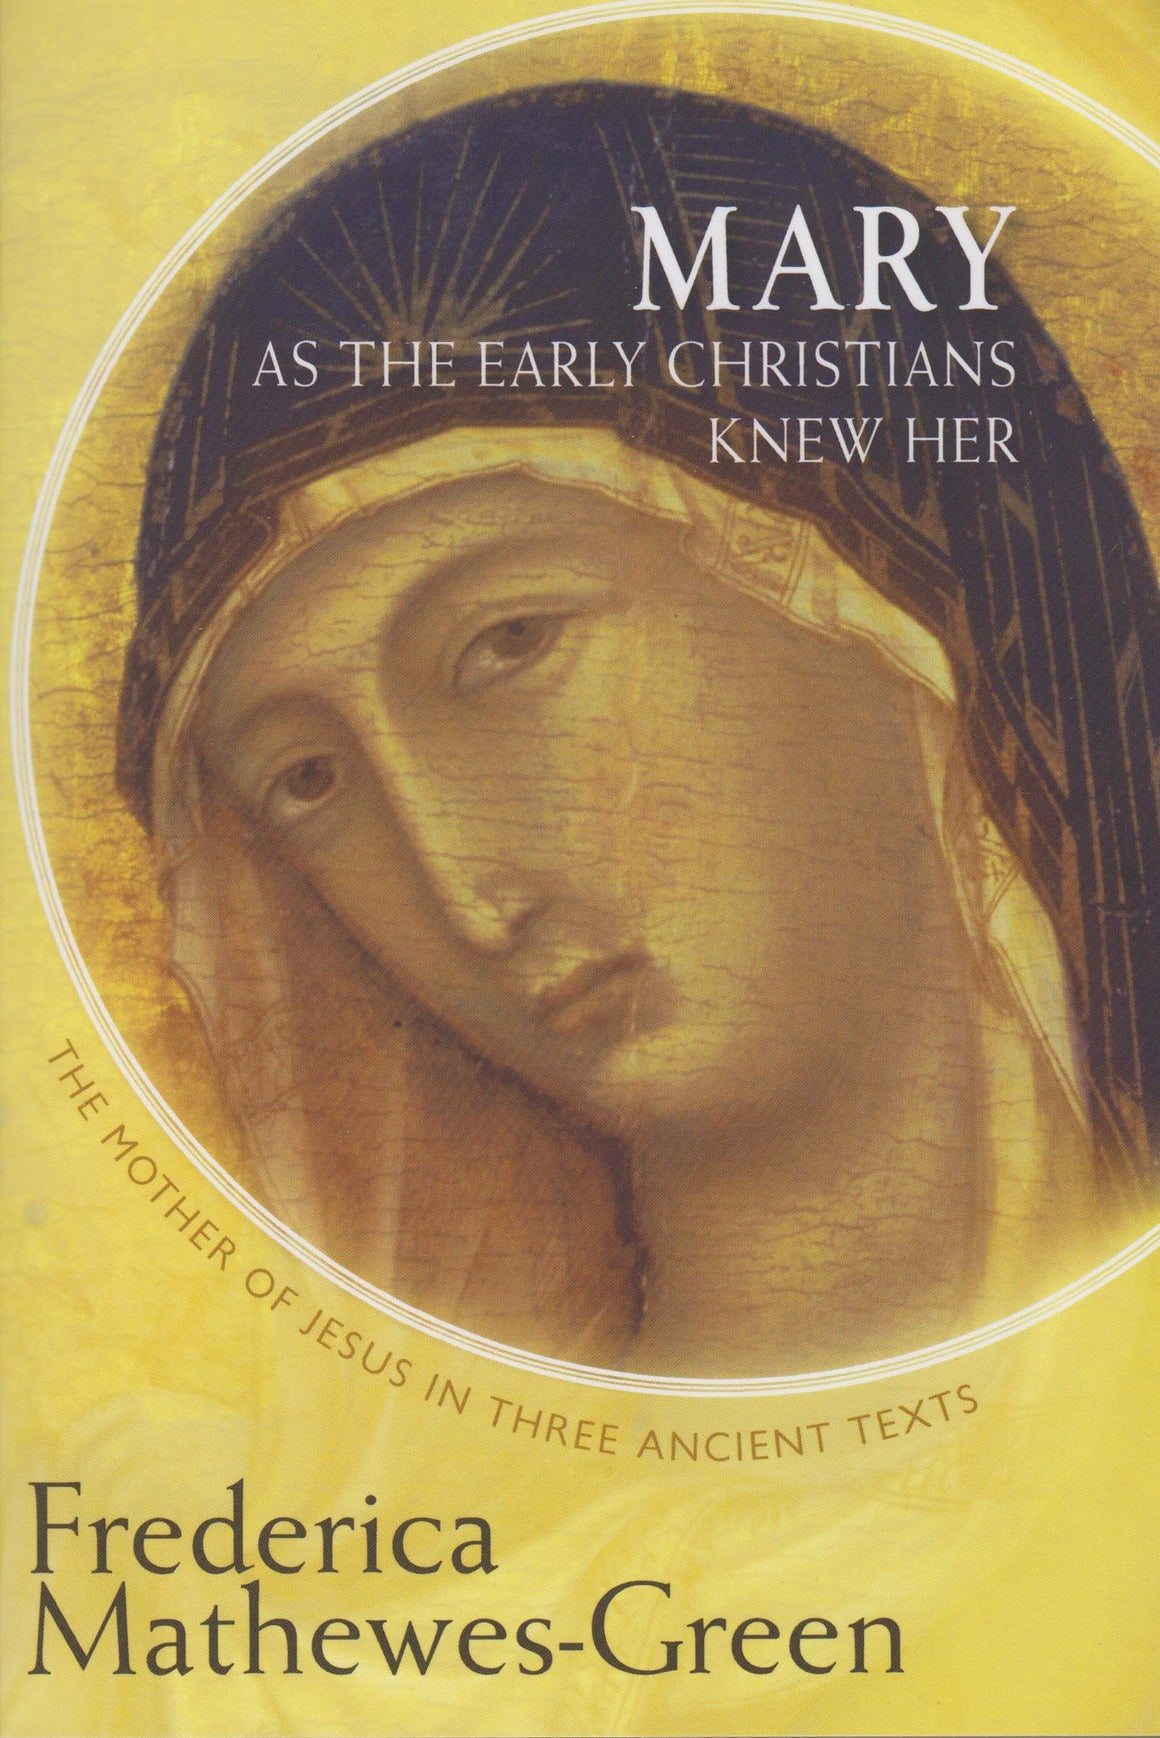 Mary - As The Early Christians Knew Her